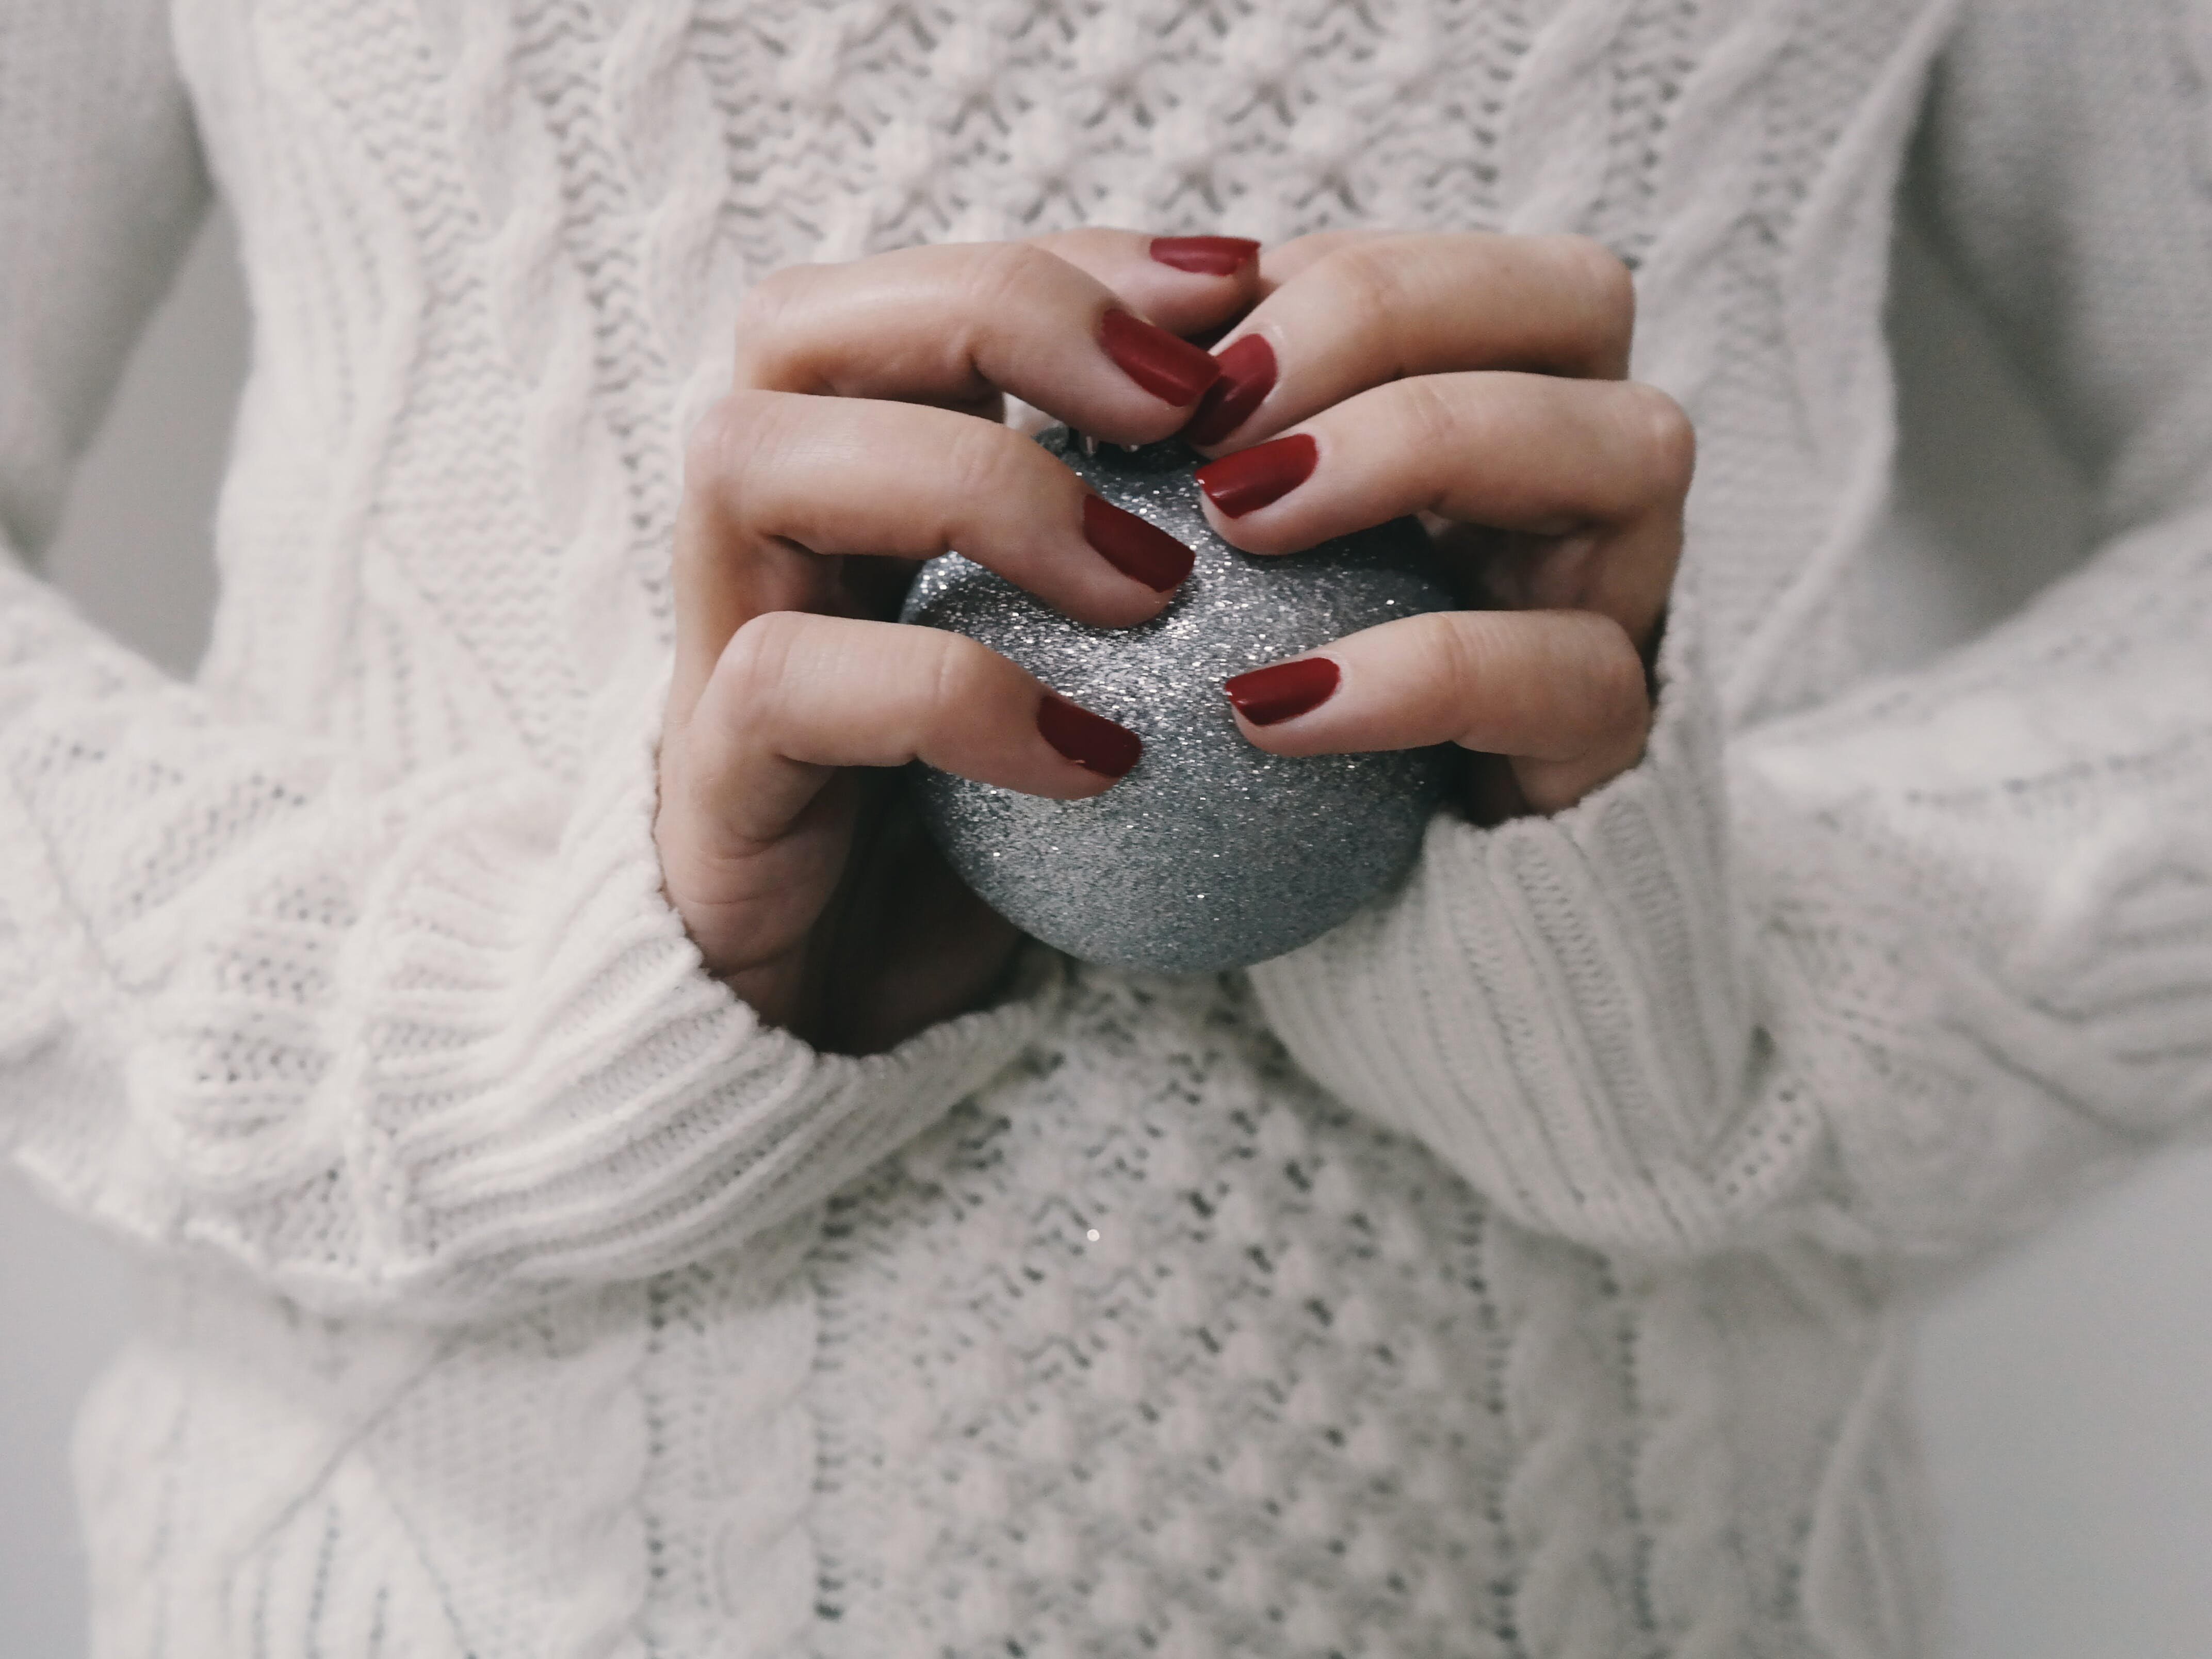 Free stock photo of hands, woman, sphere, christmas